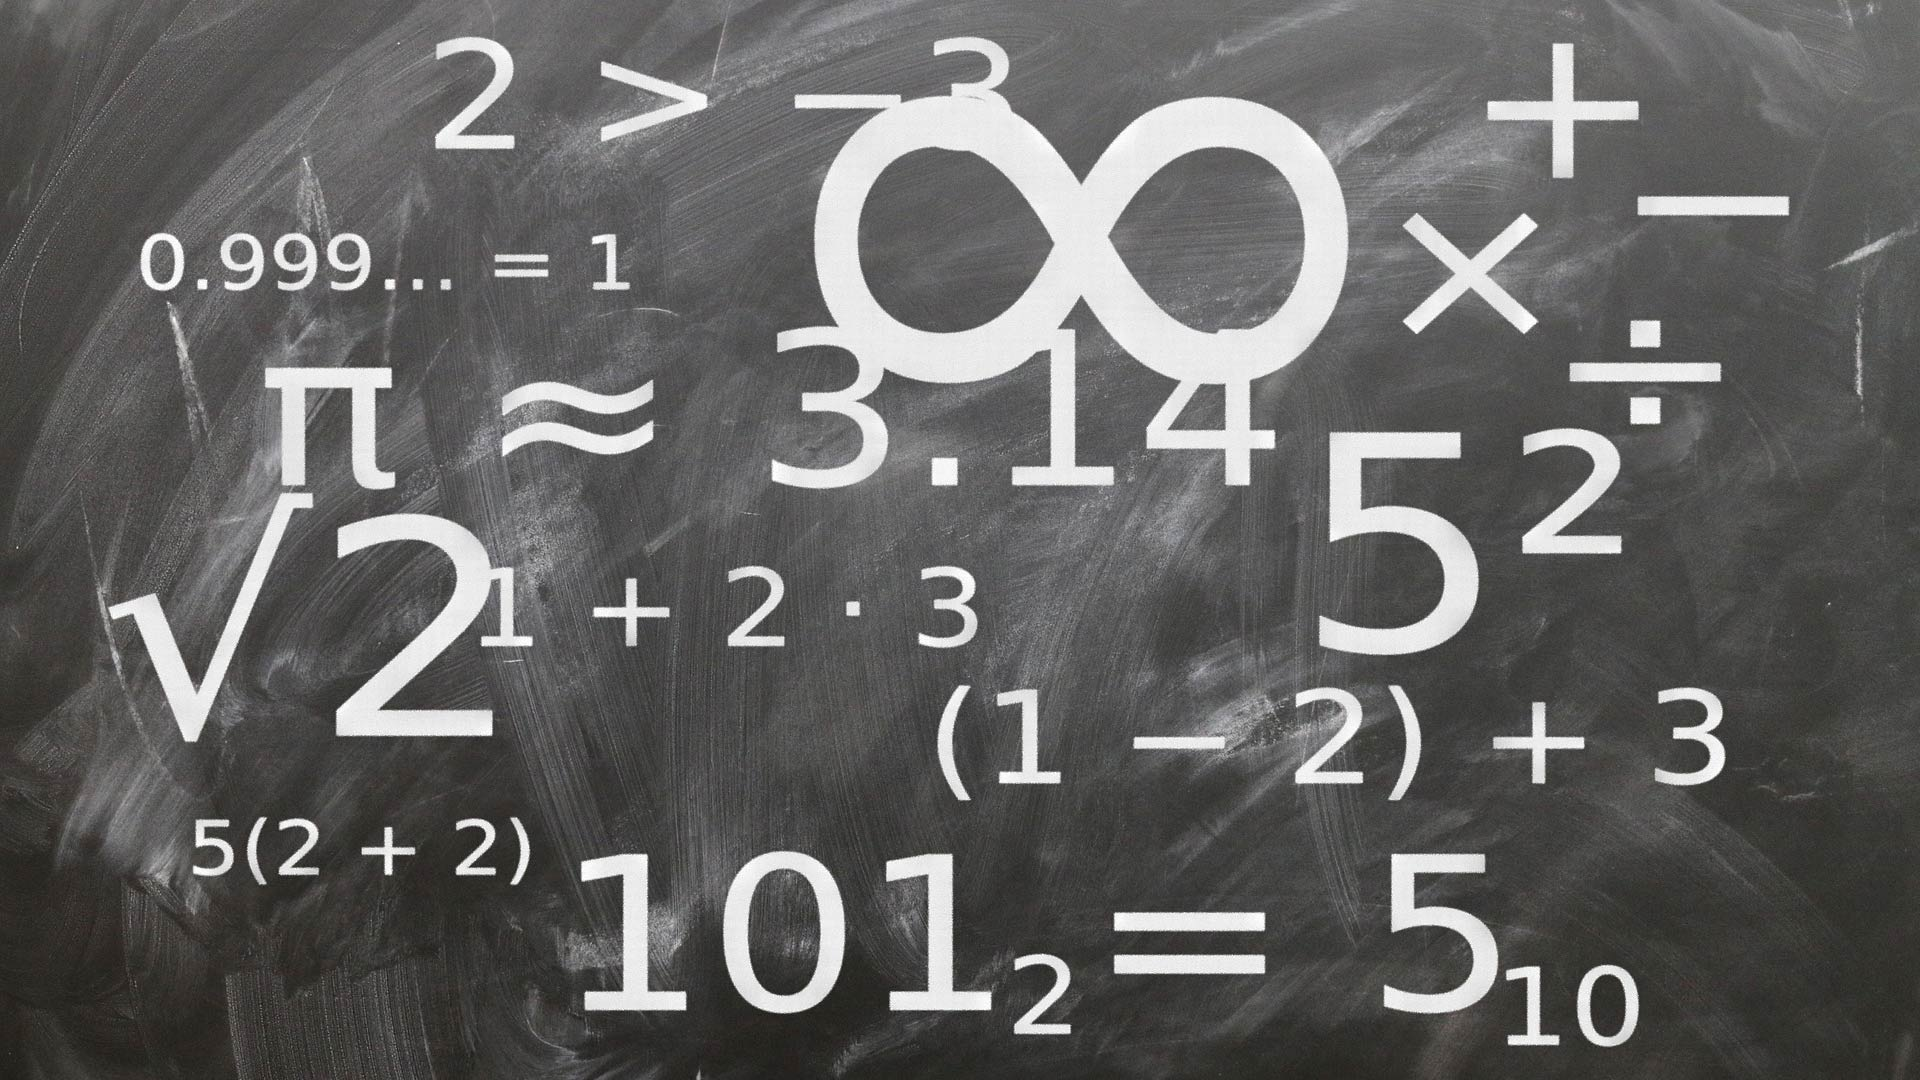 Mathematics formulae and characters on a blackboard.